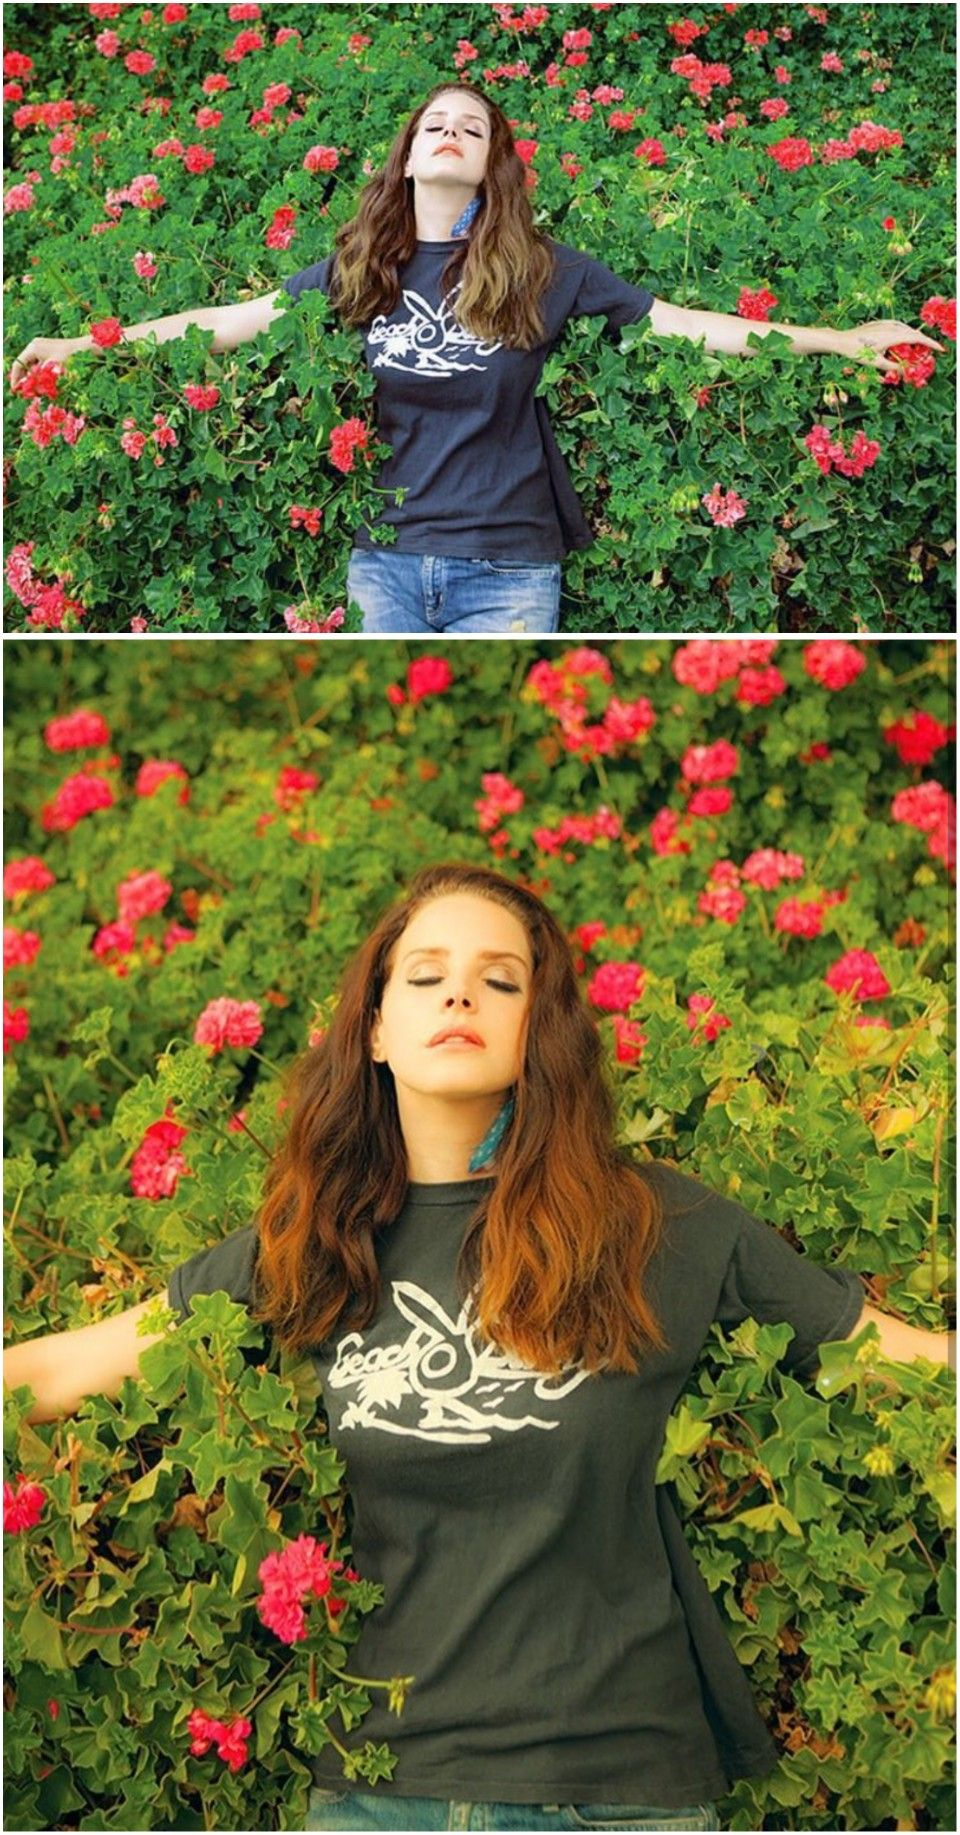 New Outtakes Lana Del Rey By Neil Krug For Ultraviolence 2014 Ldr Lana Del Rey Lana Del Rey Ultraviolence Lana Del